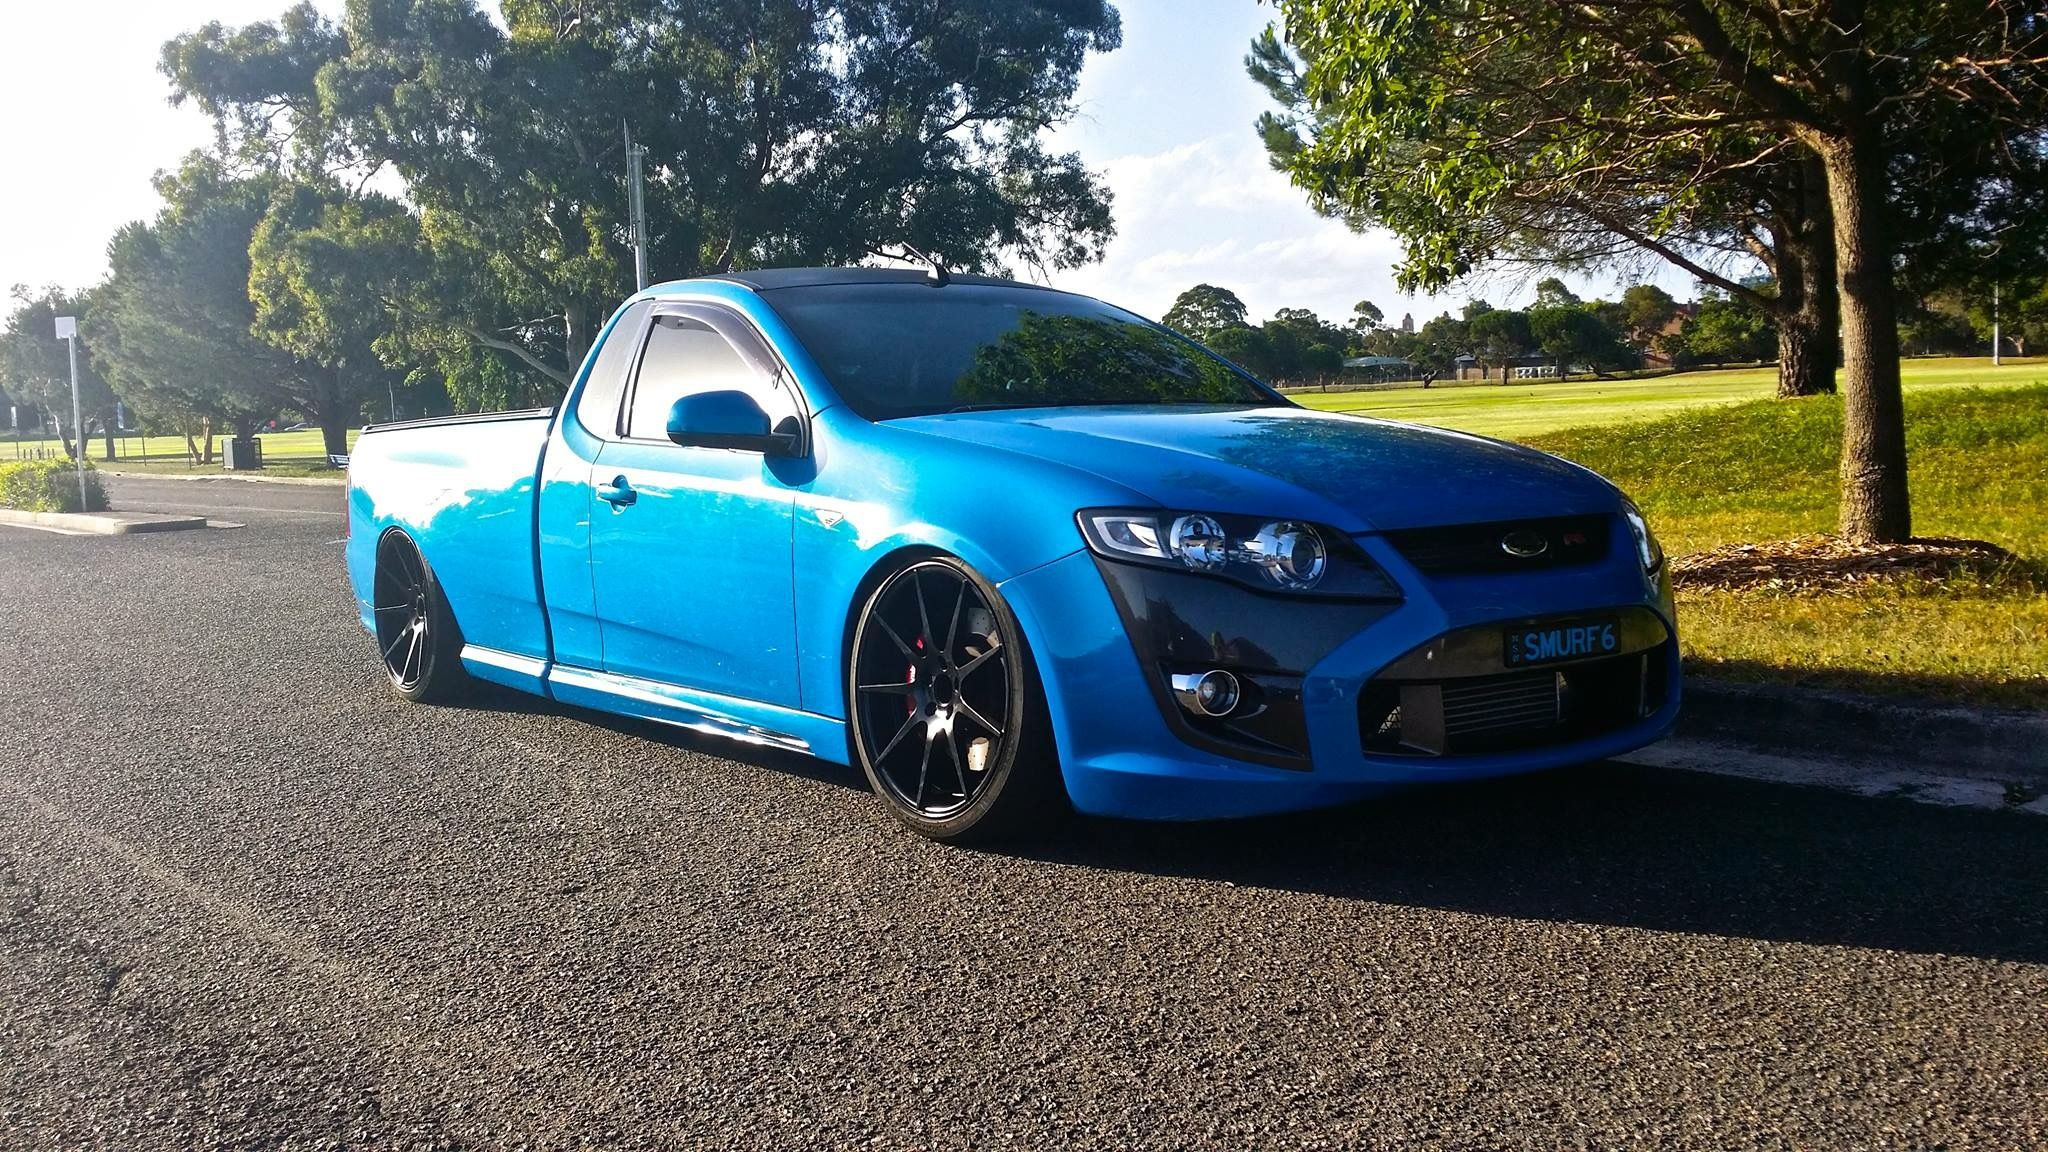 Falcon Xr8 Ute Ford Falcon Motocross Bikes Big Trucks